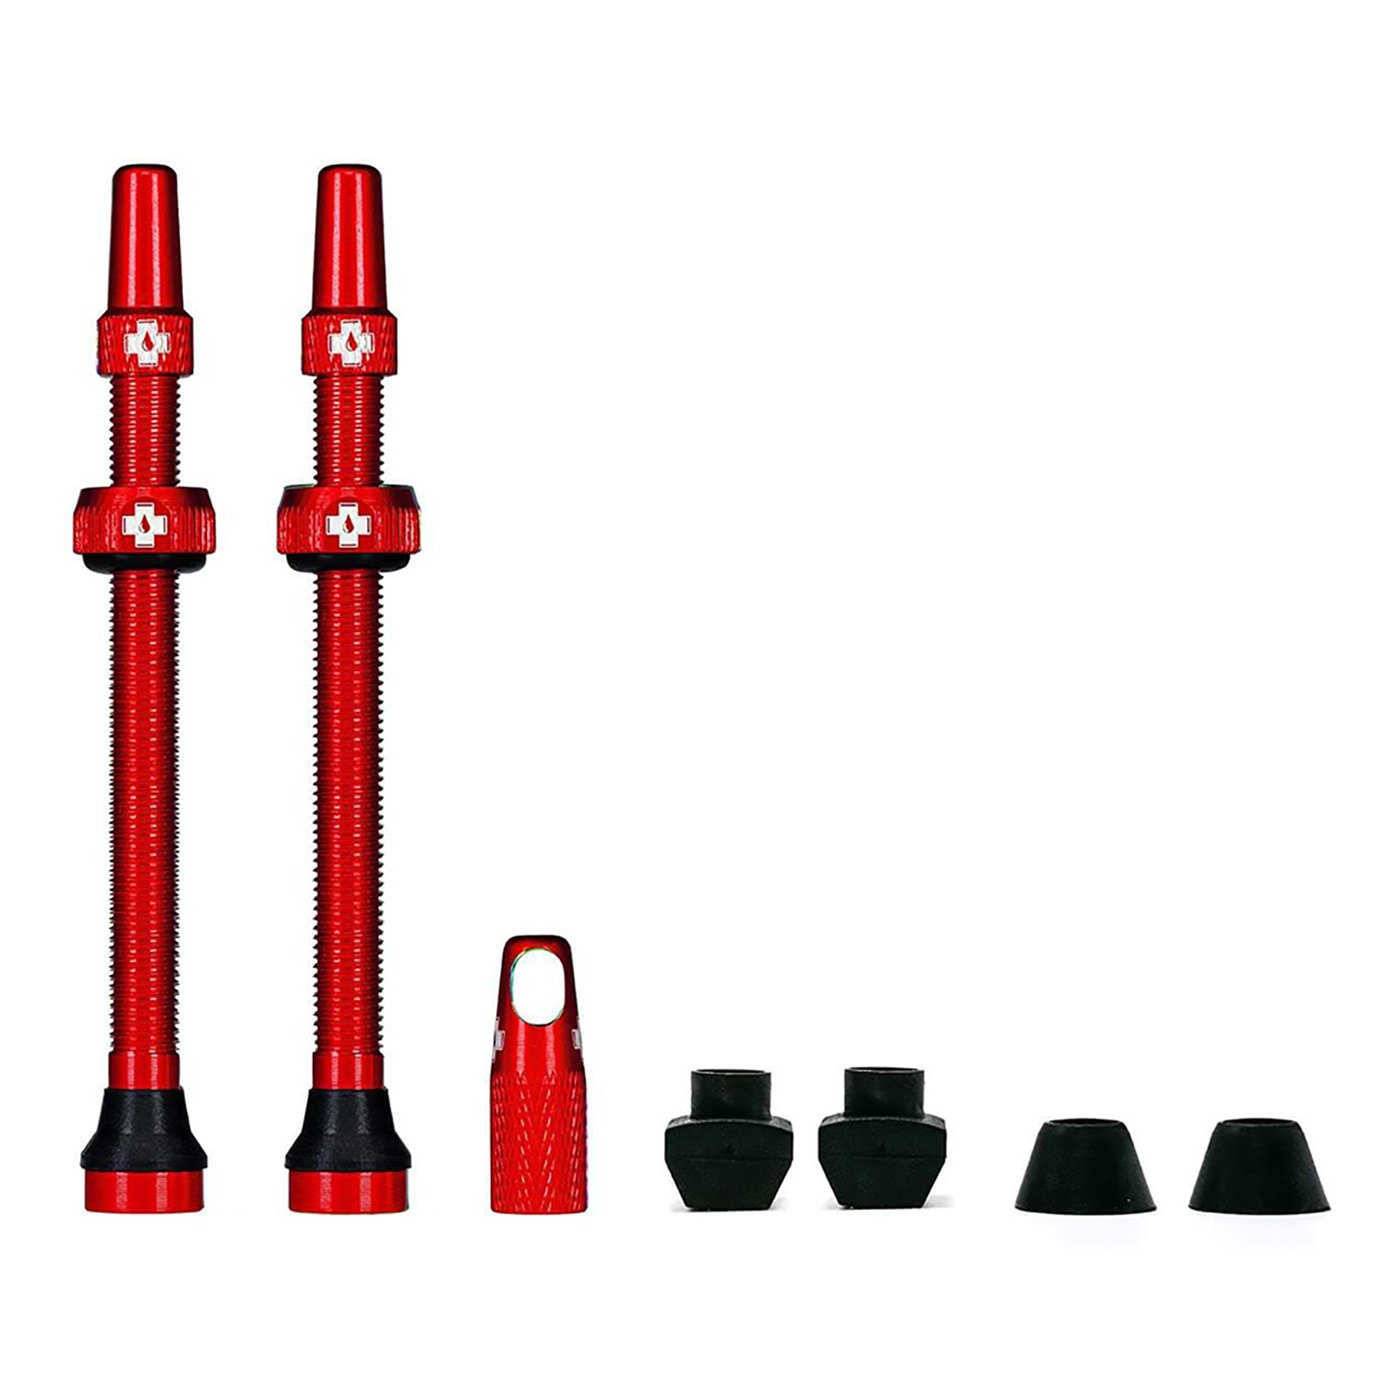 Red Tubeless Presta Valve (Pair)